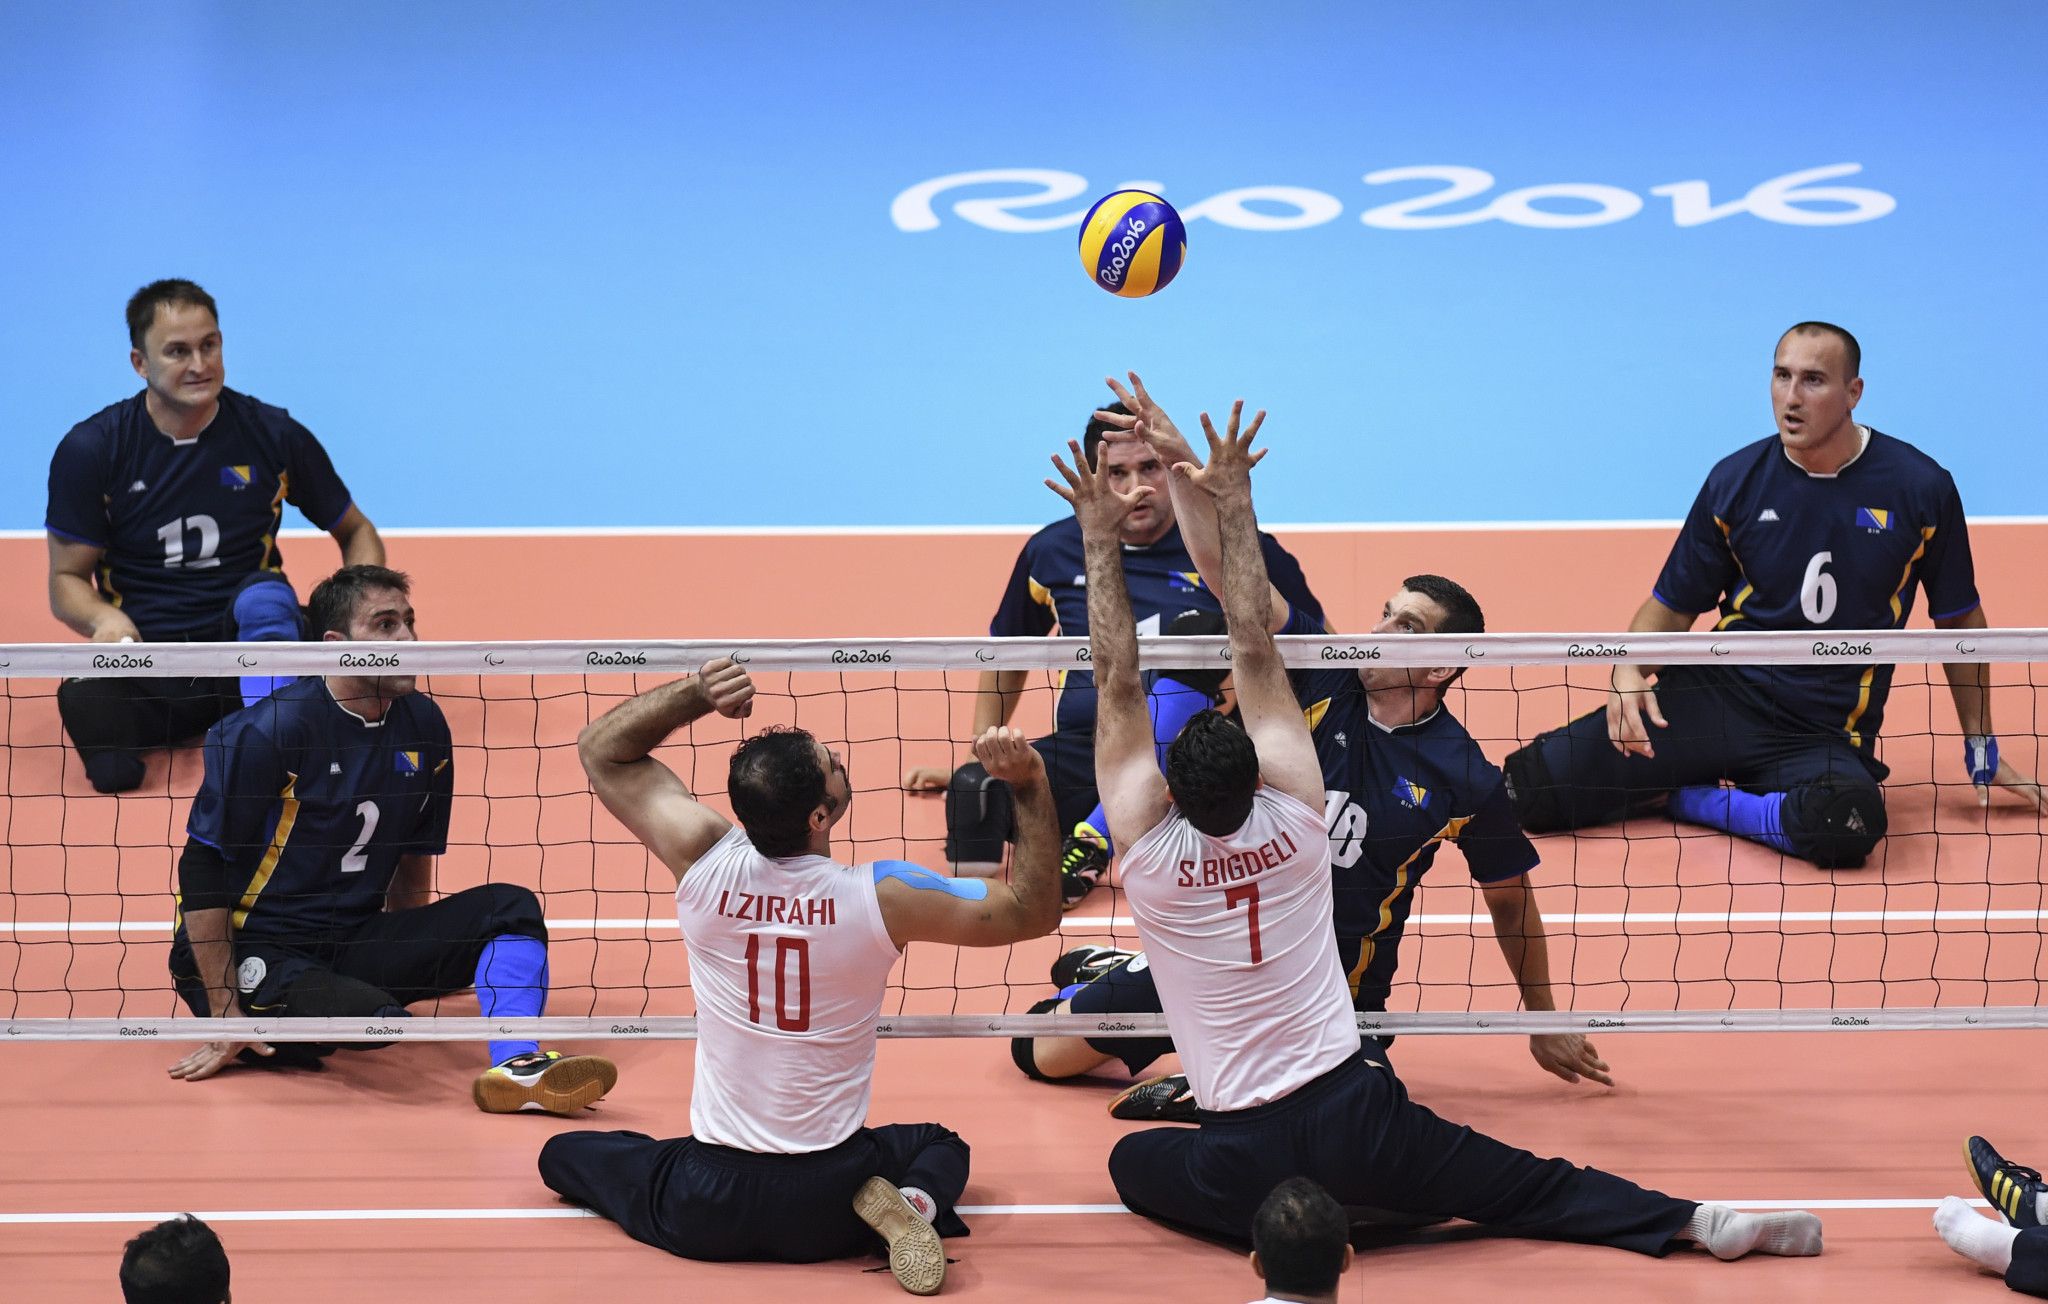 World ParaVolley hope the Foundation can help develop the sport further ©Getty Images